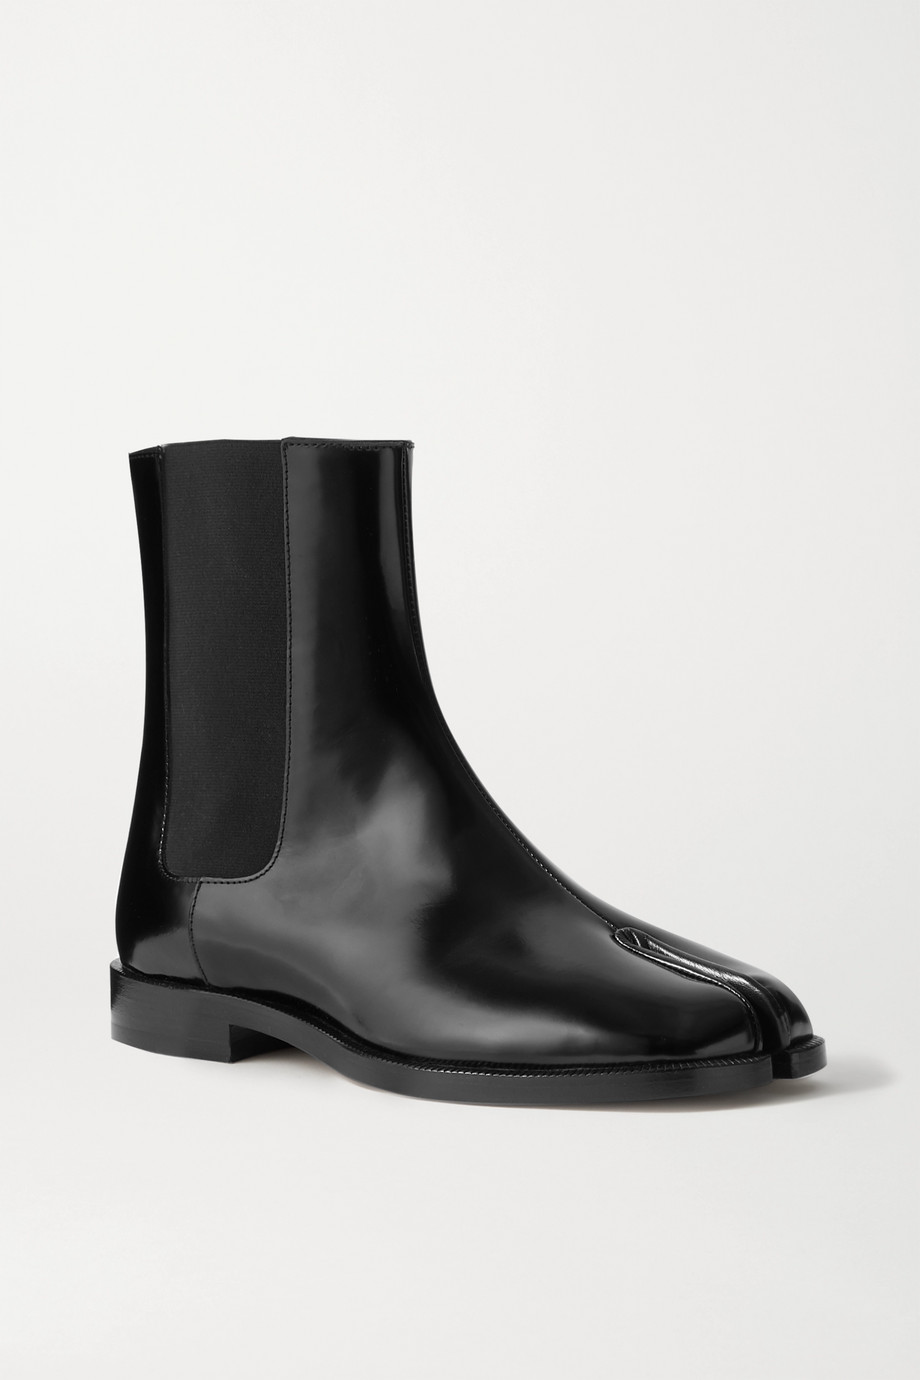 MAISON MARGIELA Tabi split-toe patent-leather Chelsea boots